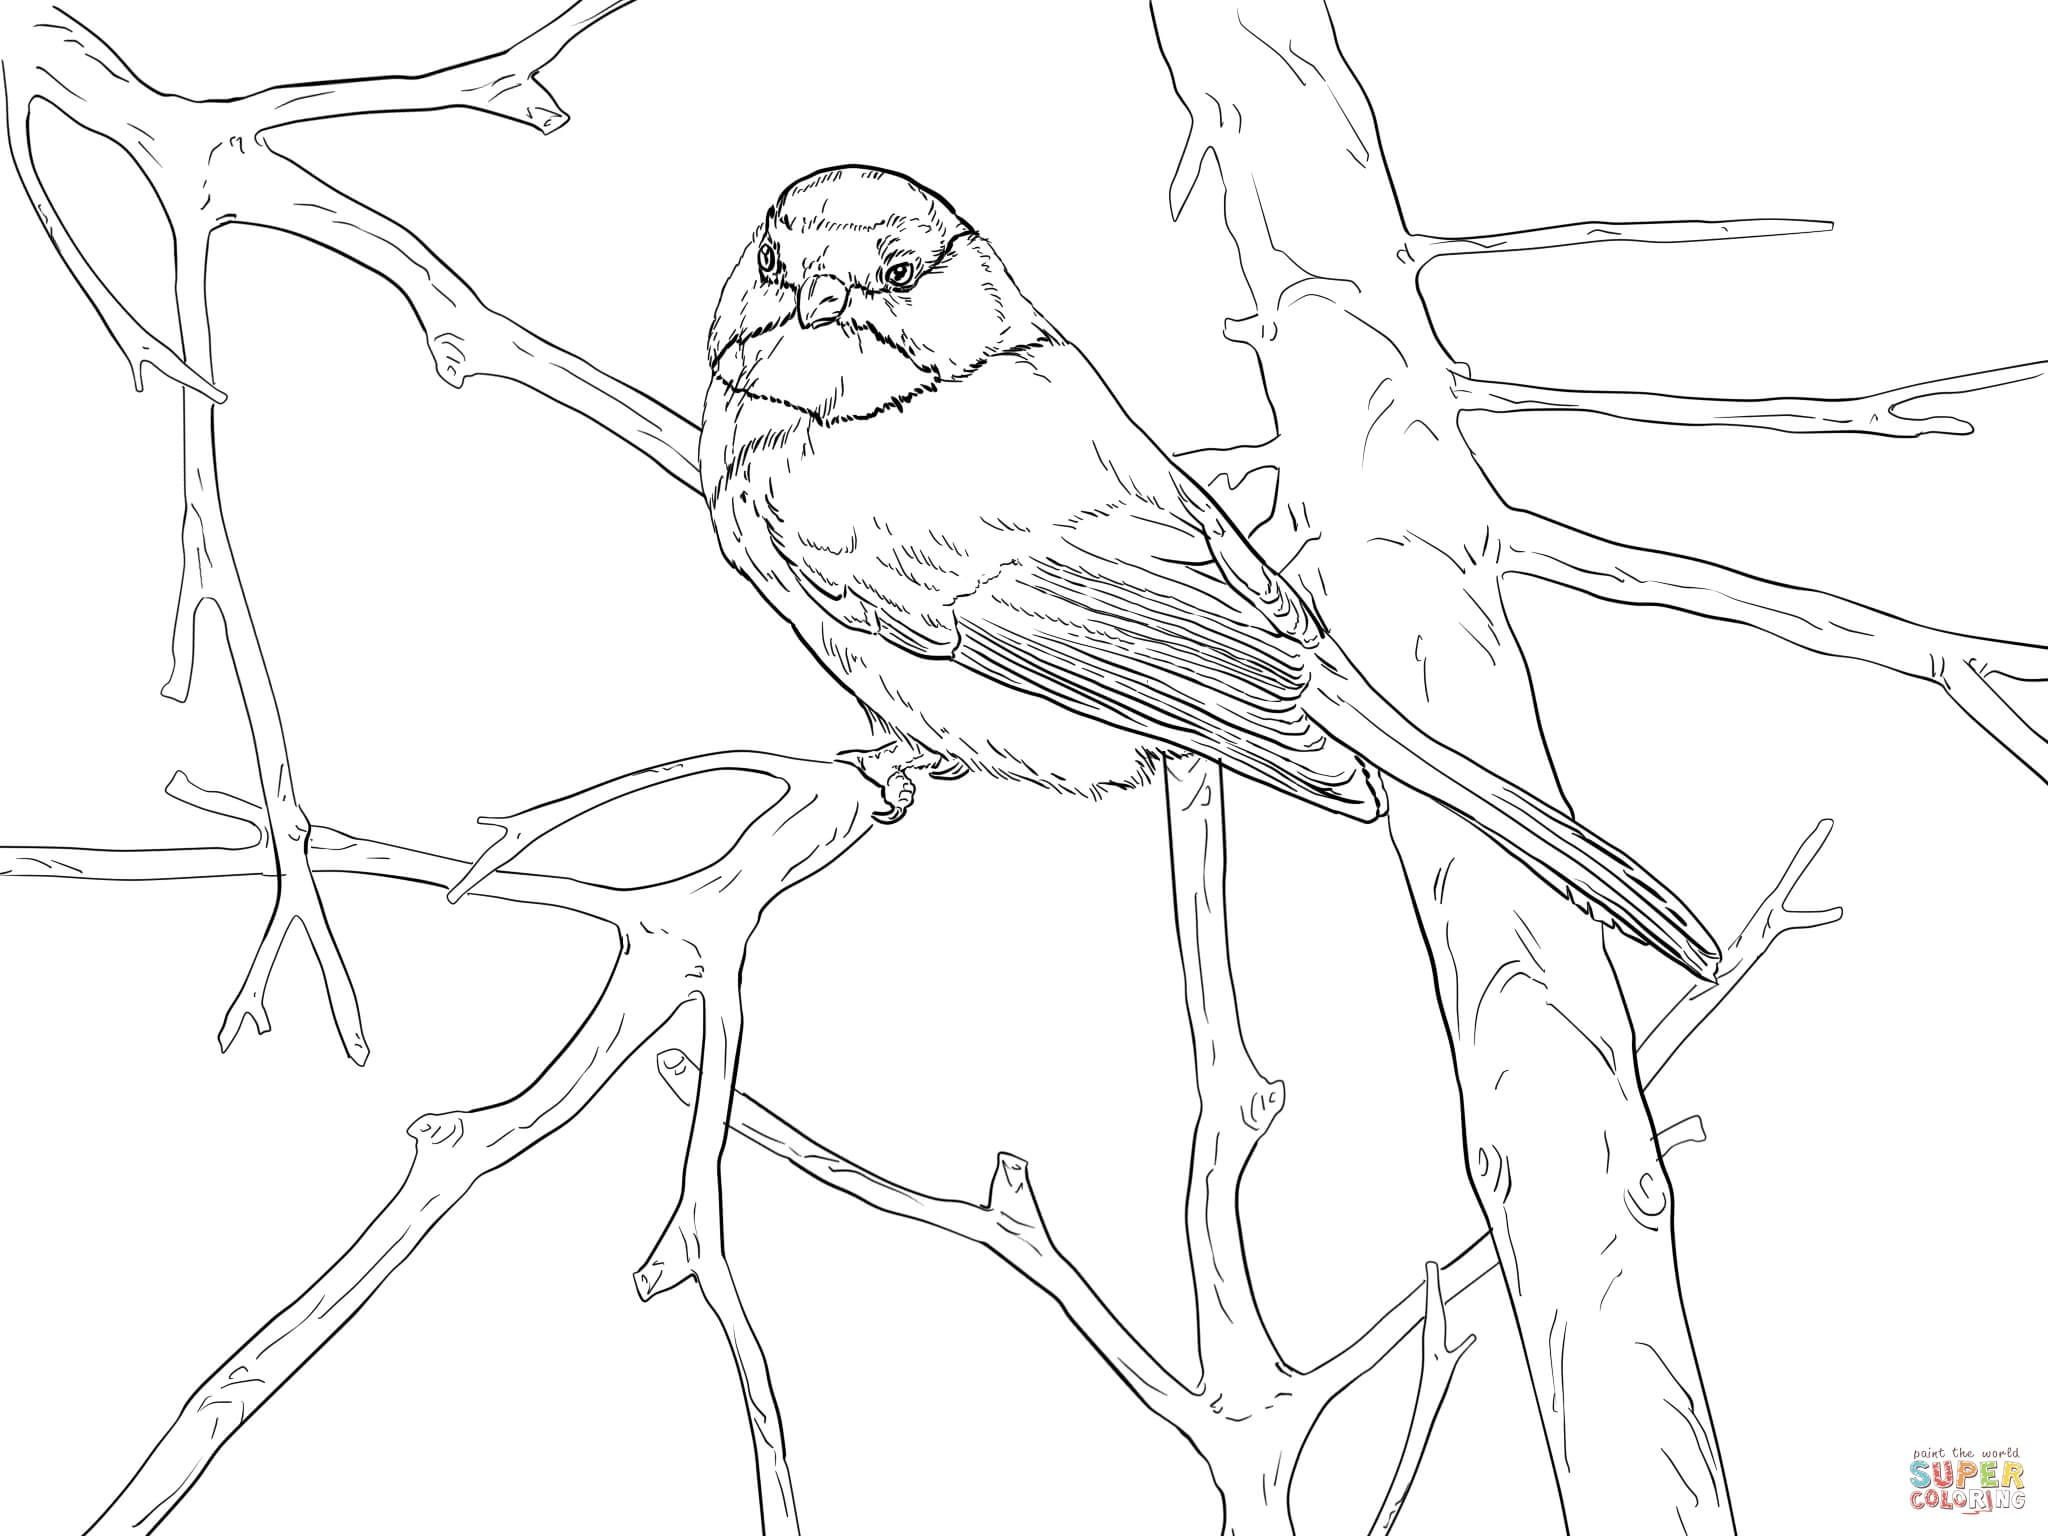 Chickadee Coloring Pages Printable Black Capped Chickadee Chickadee Drawing Chickadee